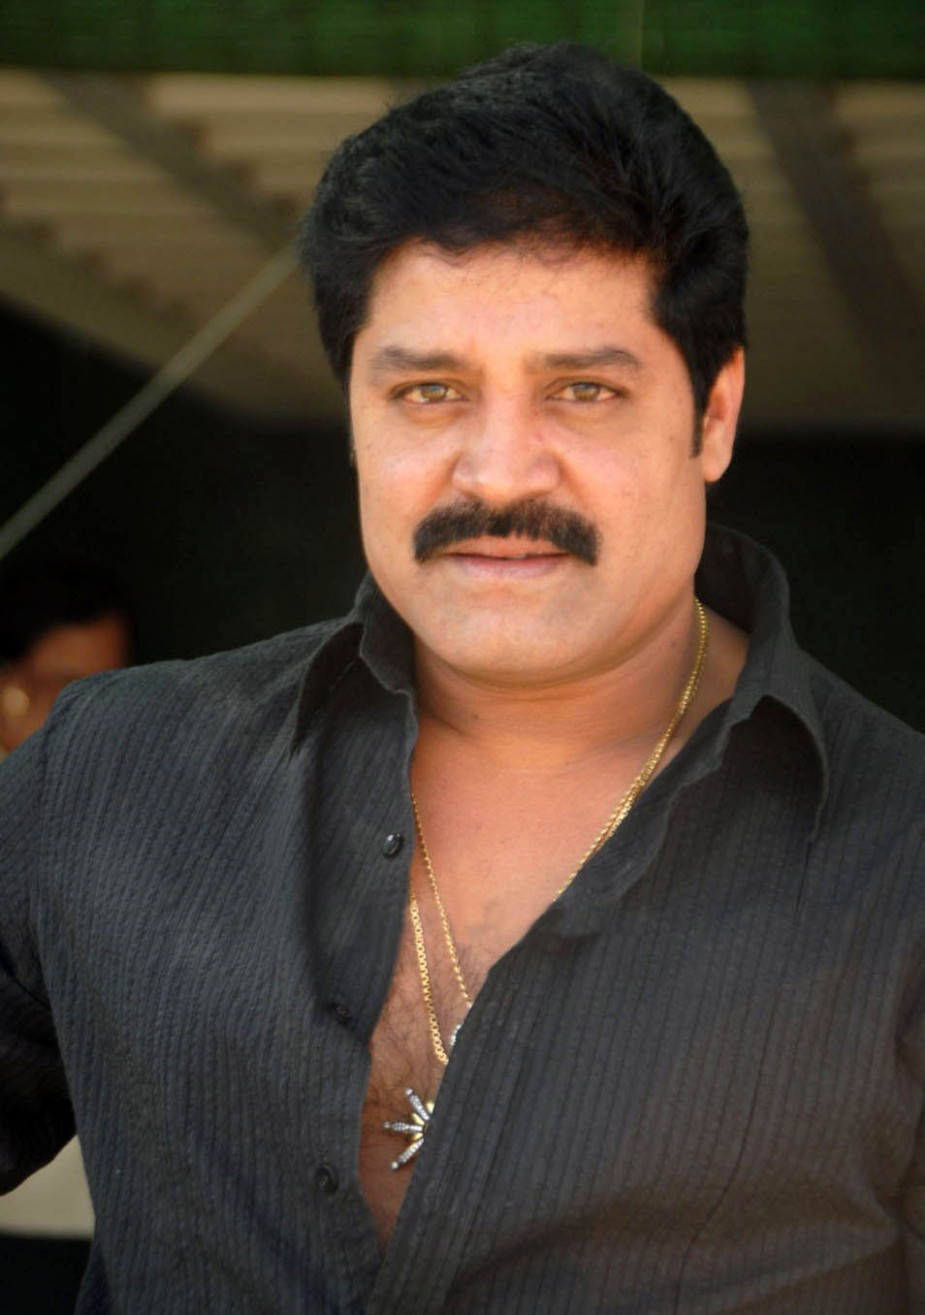 Real Star Srihari is NO MORE - FilmyScope - tollywood comedian died today